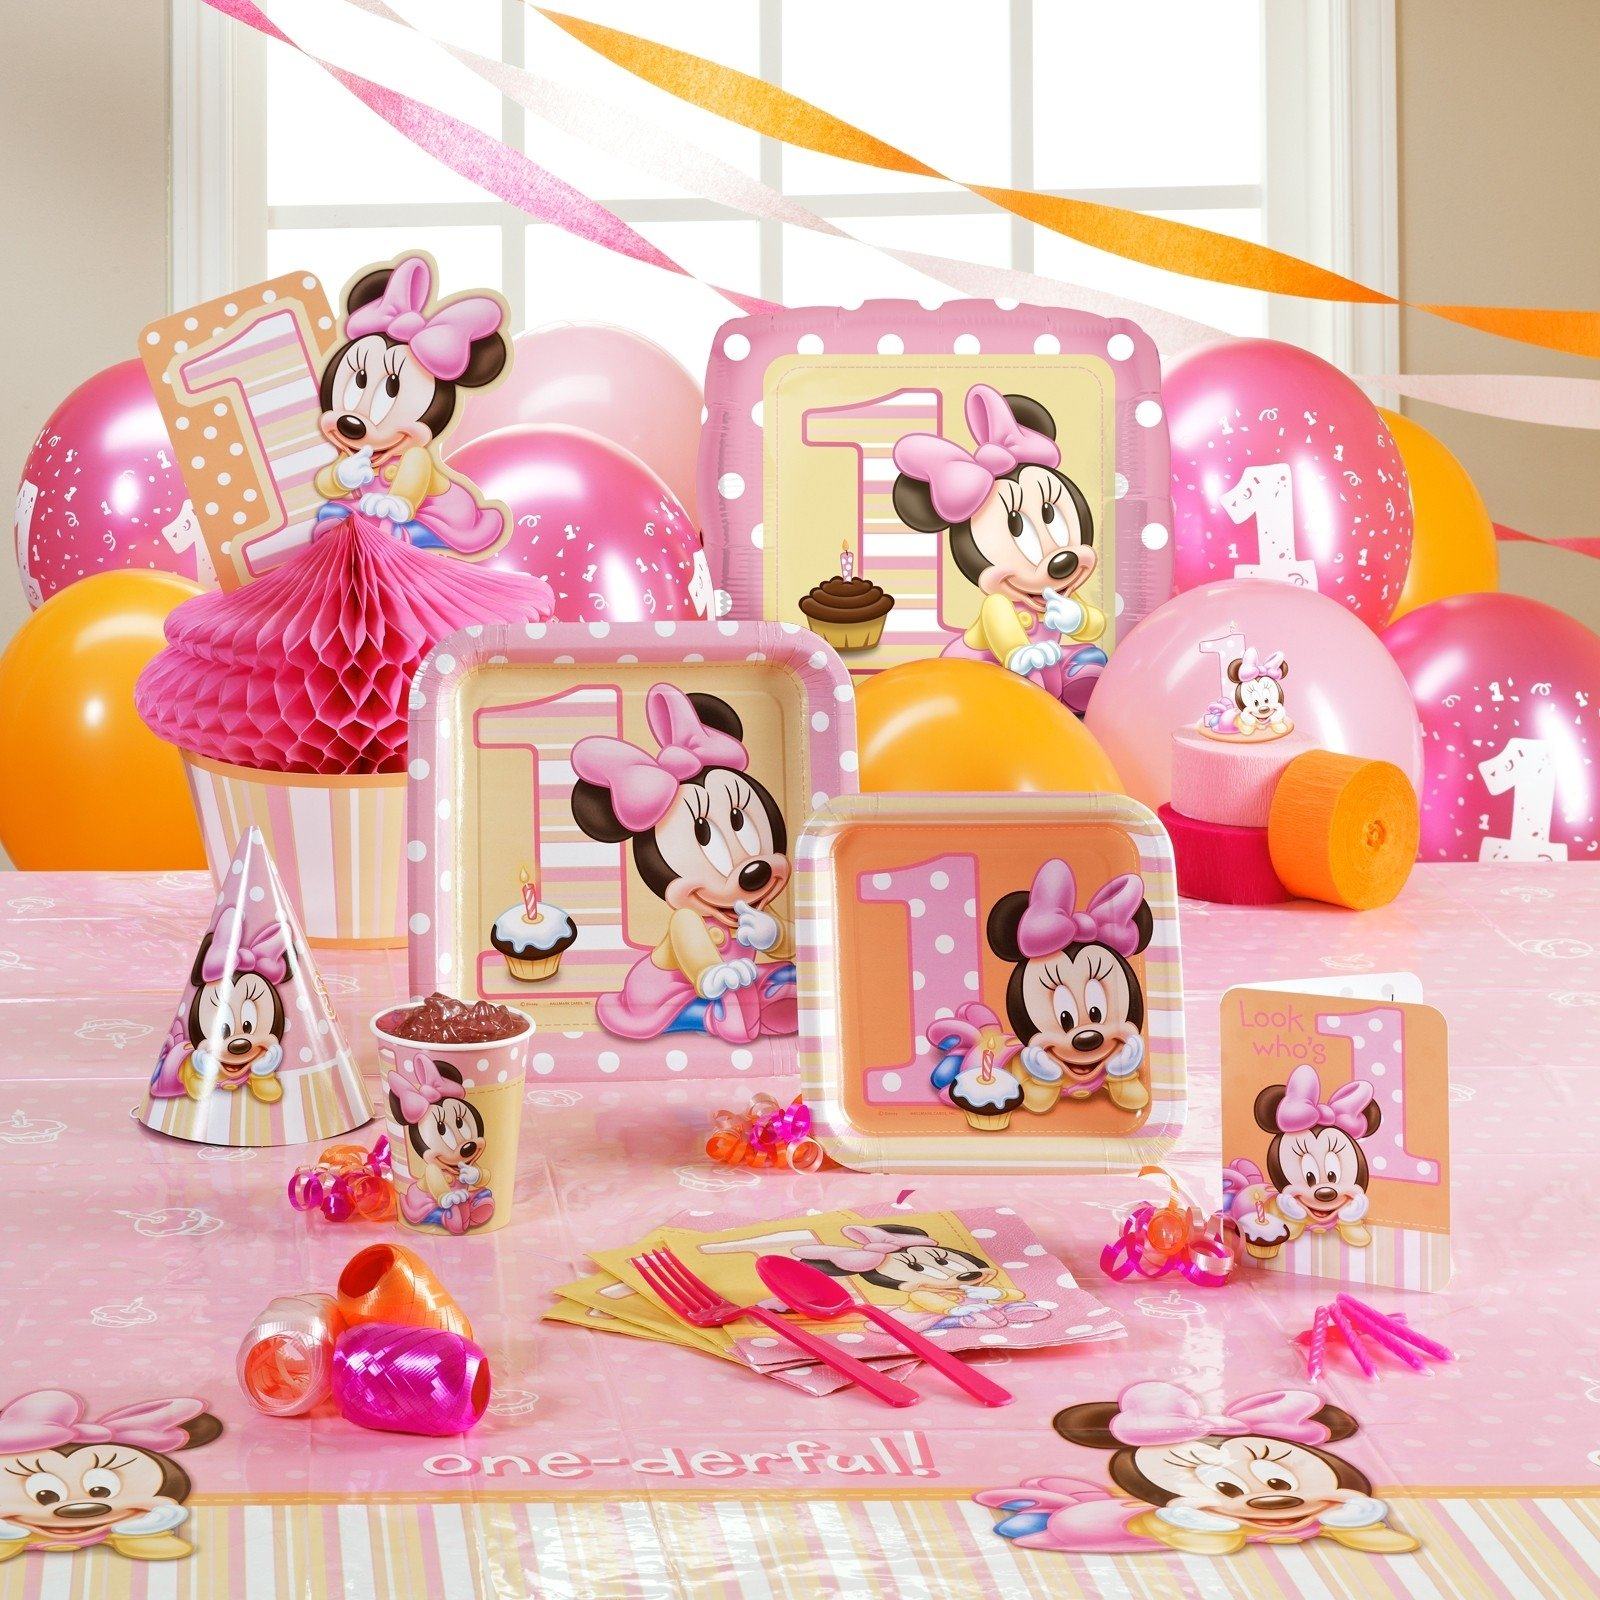 10 Fashionable Baby Minnie Mouse 1St Birthday Party Ideas minnie mouse 1st birthday party ph d  sc 1 st  Unique Ideas 2018 & 10 Fashionable Baby Minnie Mouse 1St Birthday Party Ideas